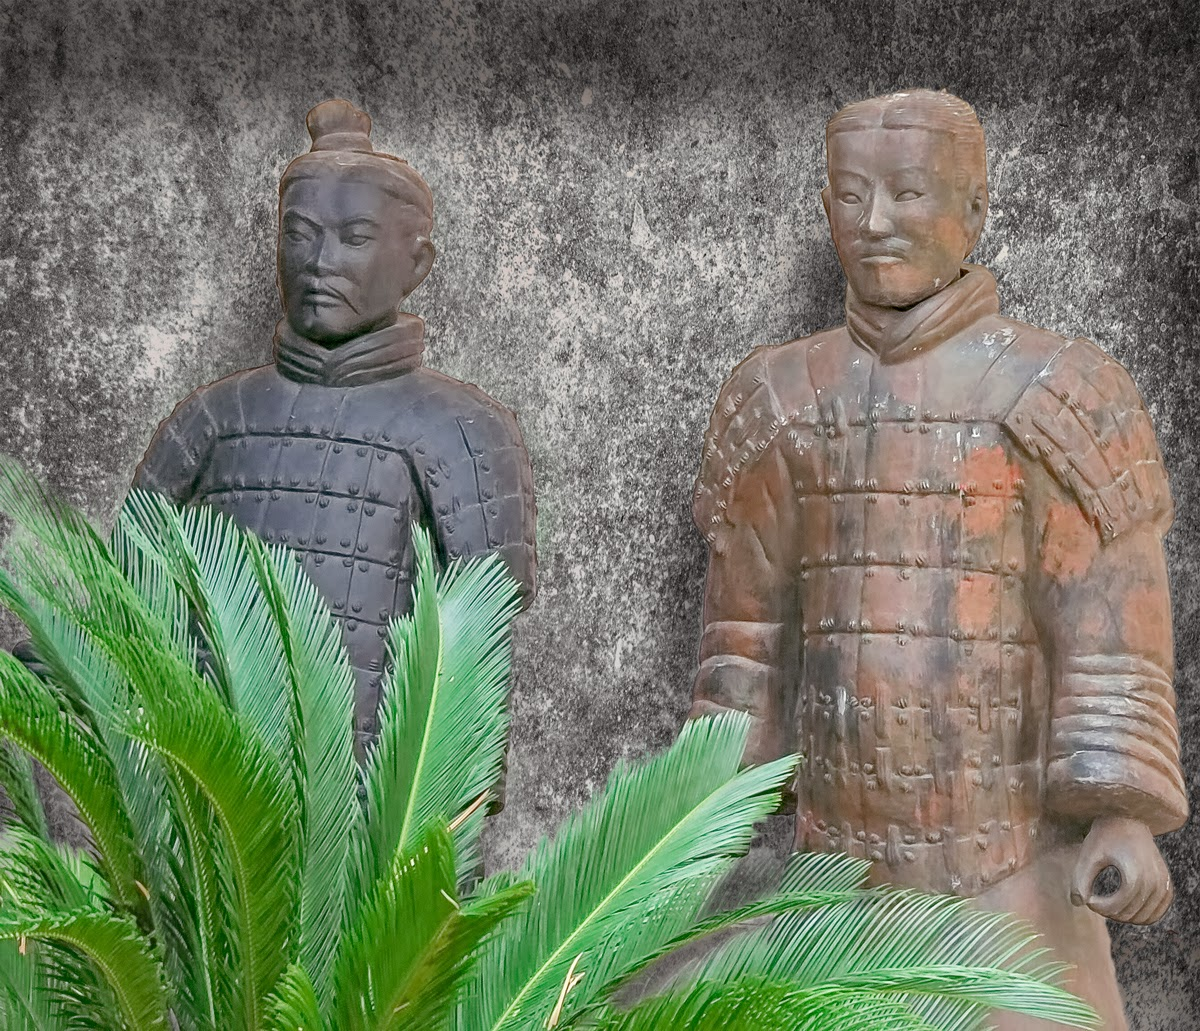 Photo: The Watchers They're so still, they look like statues!  So, at the factory where they make replicas of the Terracotta Warriors, there were these two standing on a porch, seemingly watching the tourists come and go. They really weren't very well situated, so I gave them this almost-square crop and a textured background (originally an off-white wall). The shadows of the Warriors and on the top and right edges of the frame are the result of adding an inner shadow to the texture layer with the Warriors and palm branches masked. The result gives some depth to the scene, and keeping the soldiers from looking like cut-outs. I like that!  #Travel   #China   #Terracottawarriors   #Xian   #Photoshop   #texturblend